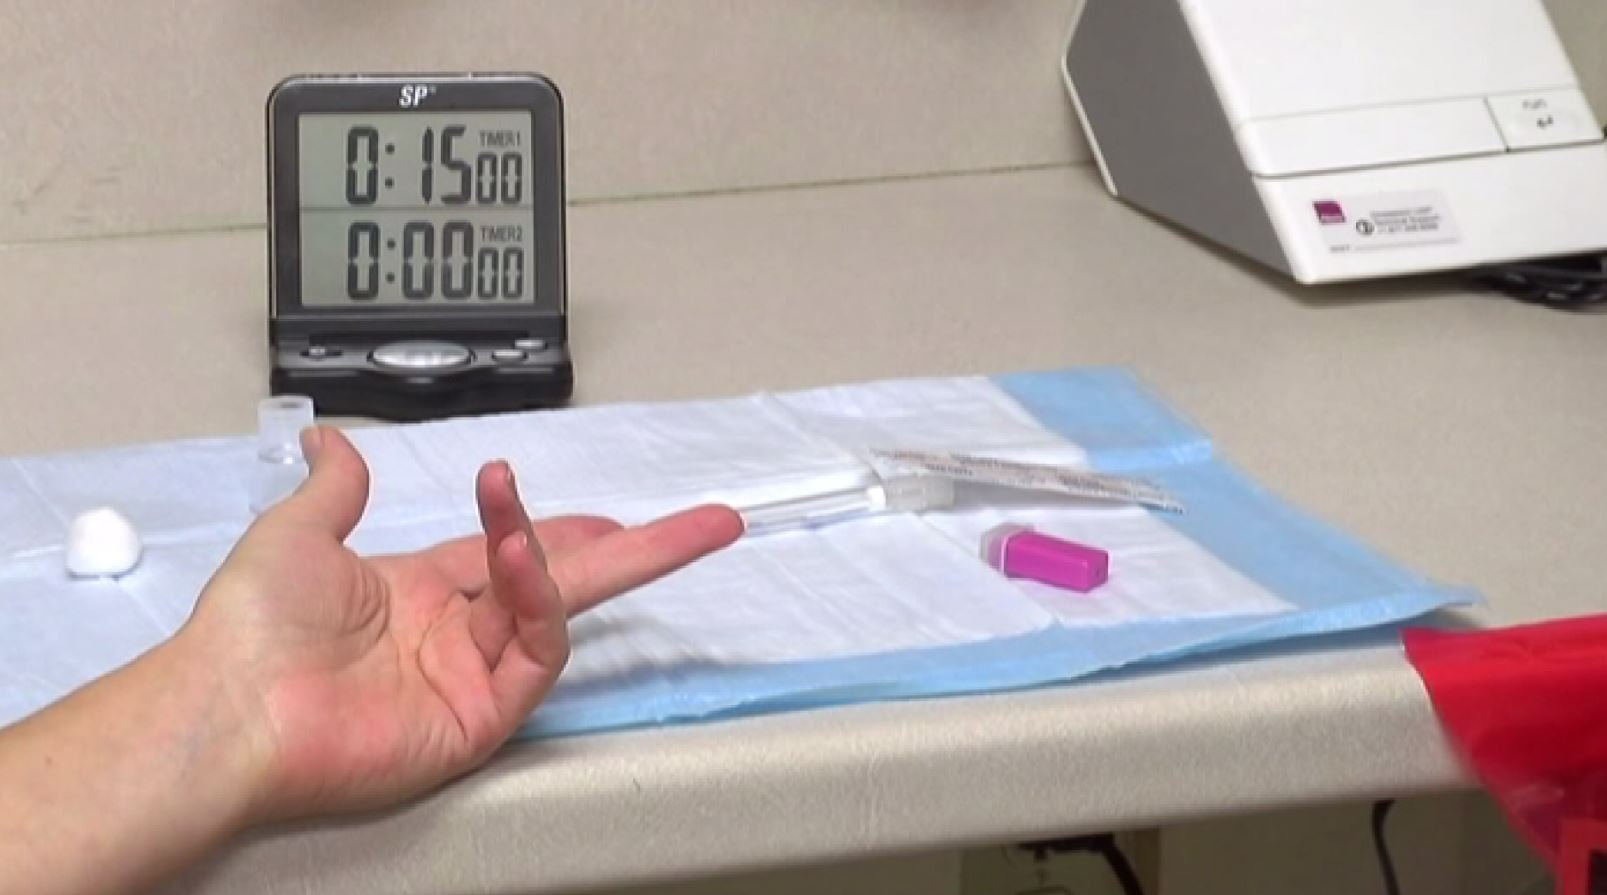 Health department recommends HIV testing for at risk groups